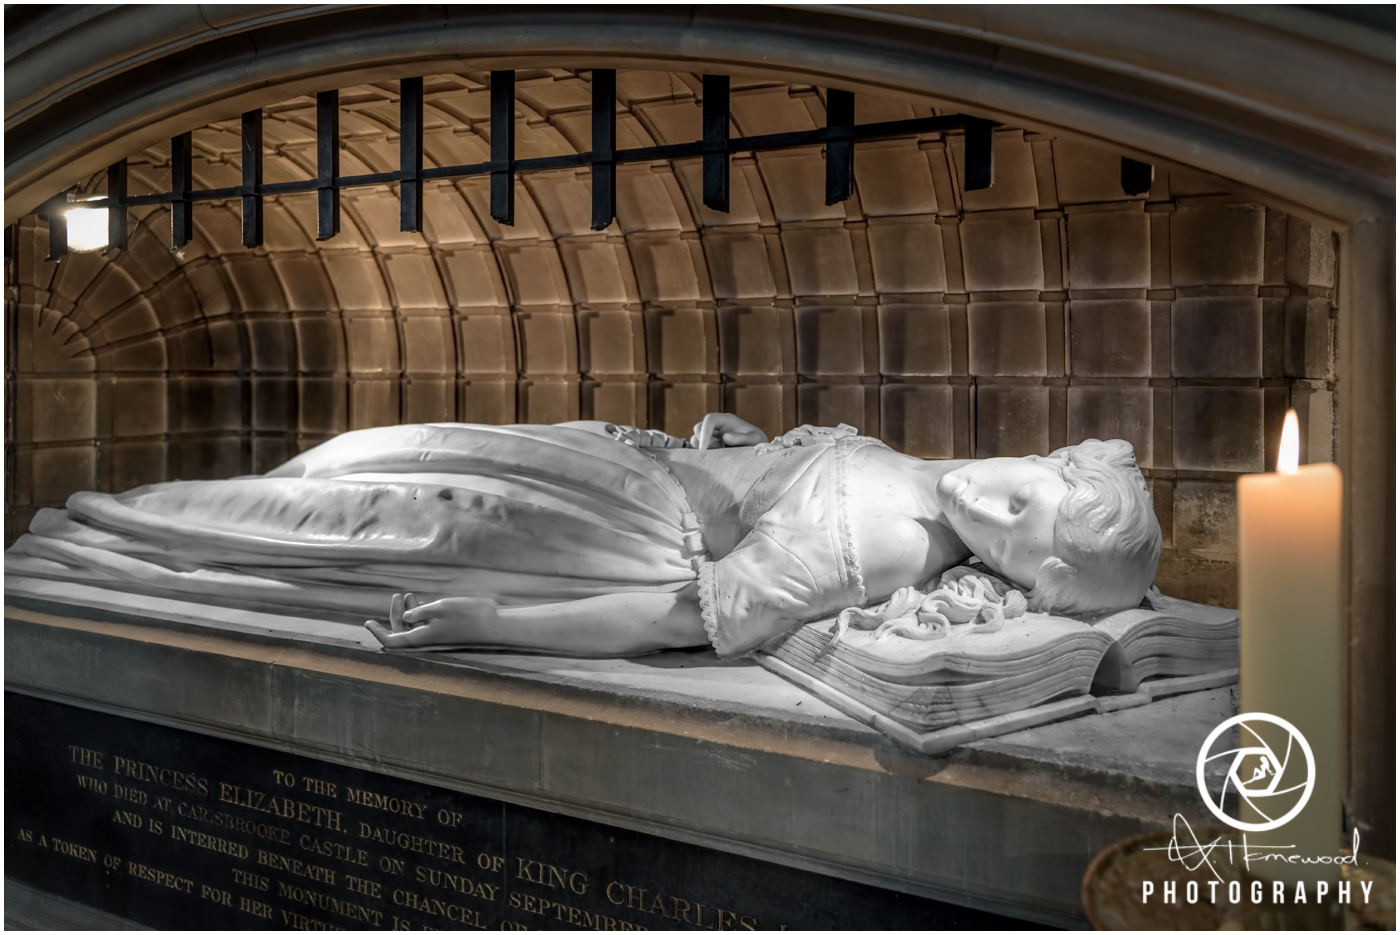 Tomb of Princess Elizabeth